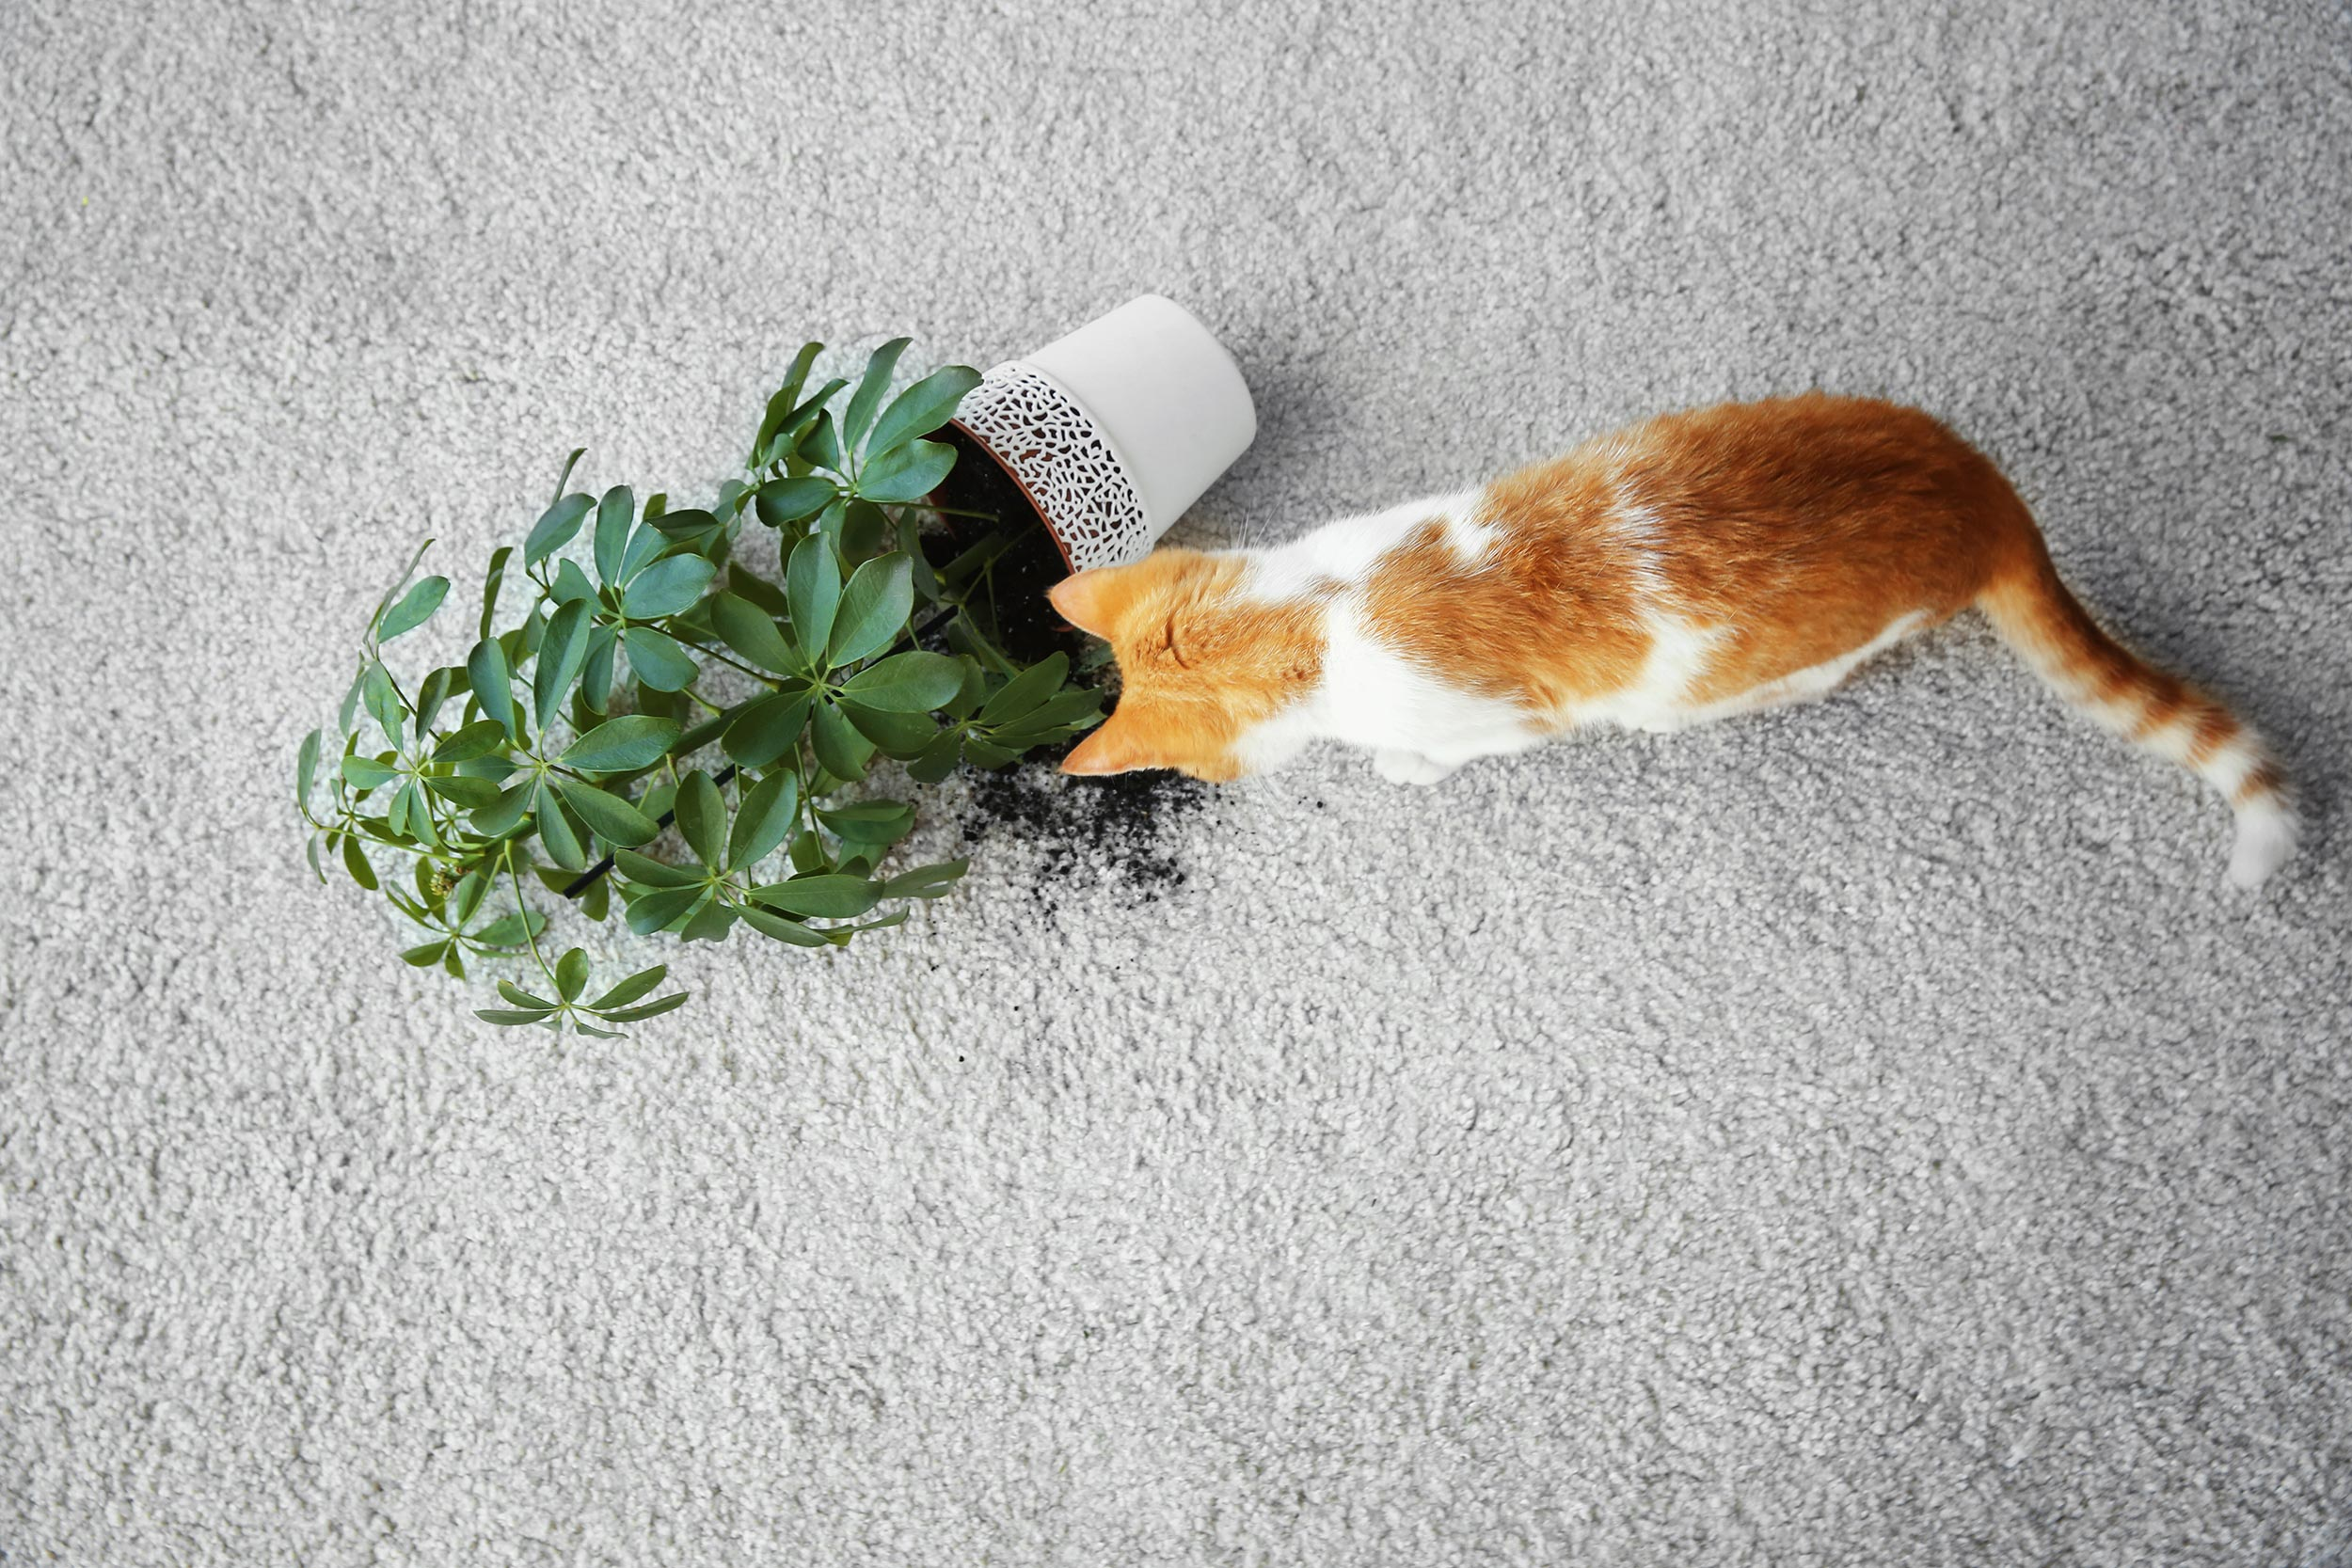 	A cat next to a broken jar with a plant